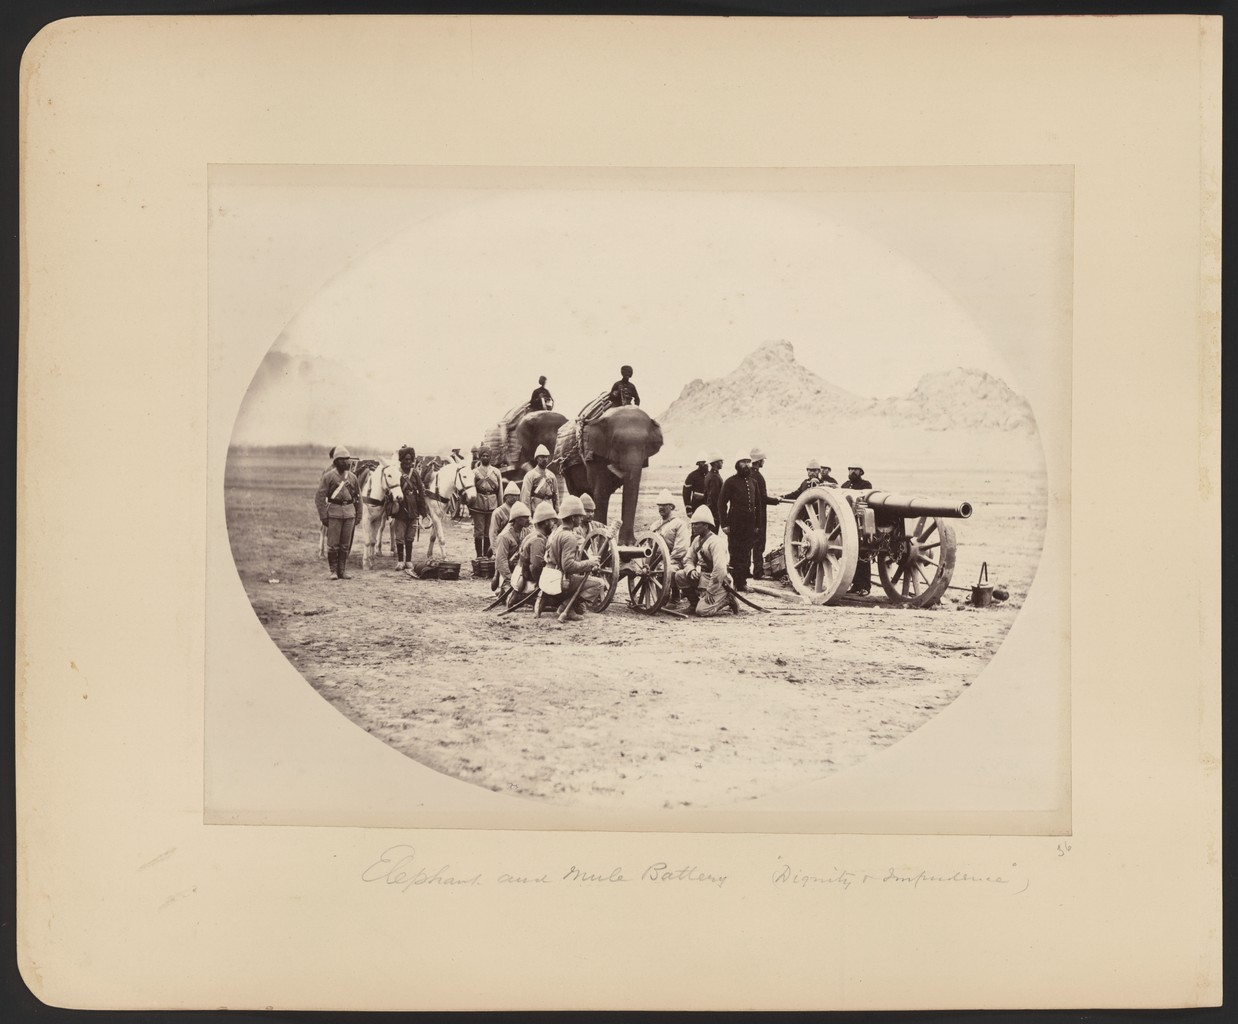 An elephant and mule artillery battery from the Second Anglo-Afghan War of 1878-1880.